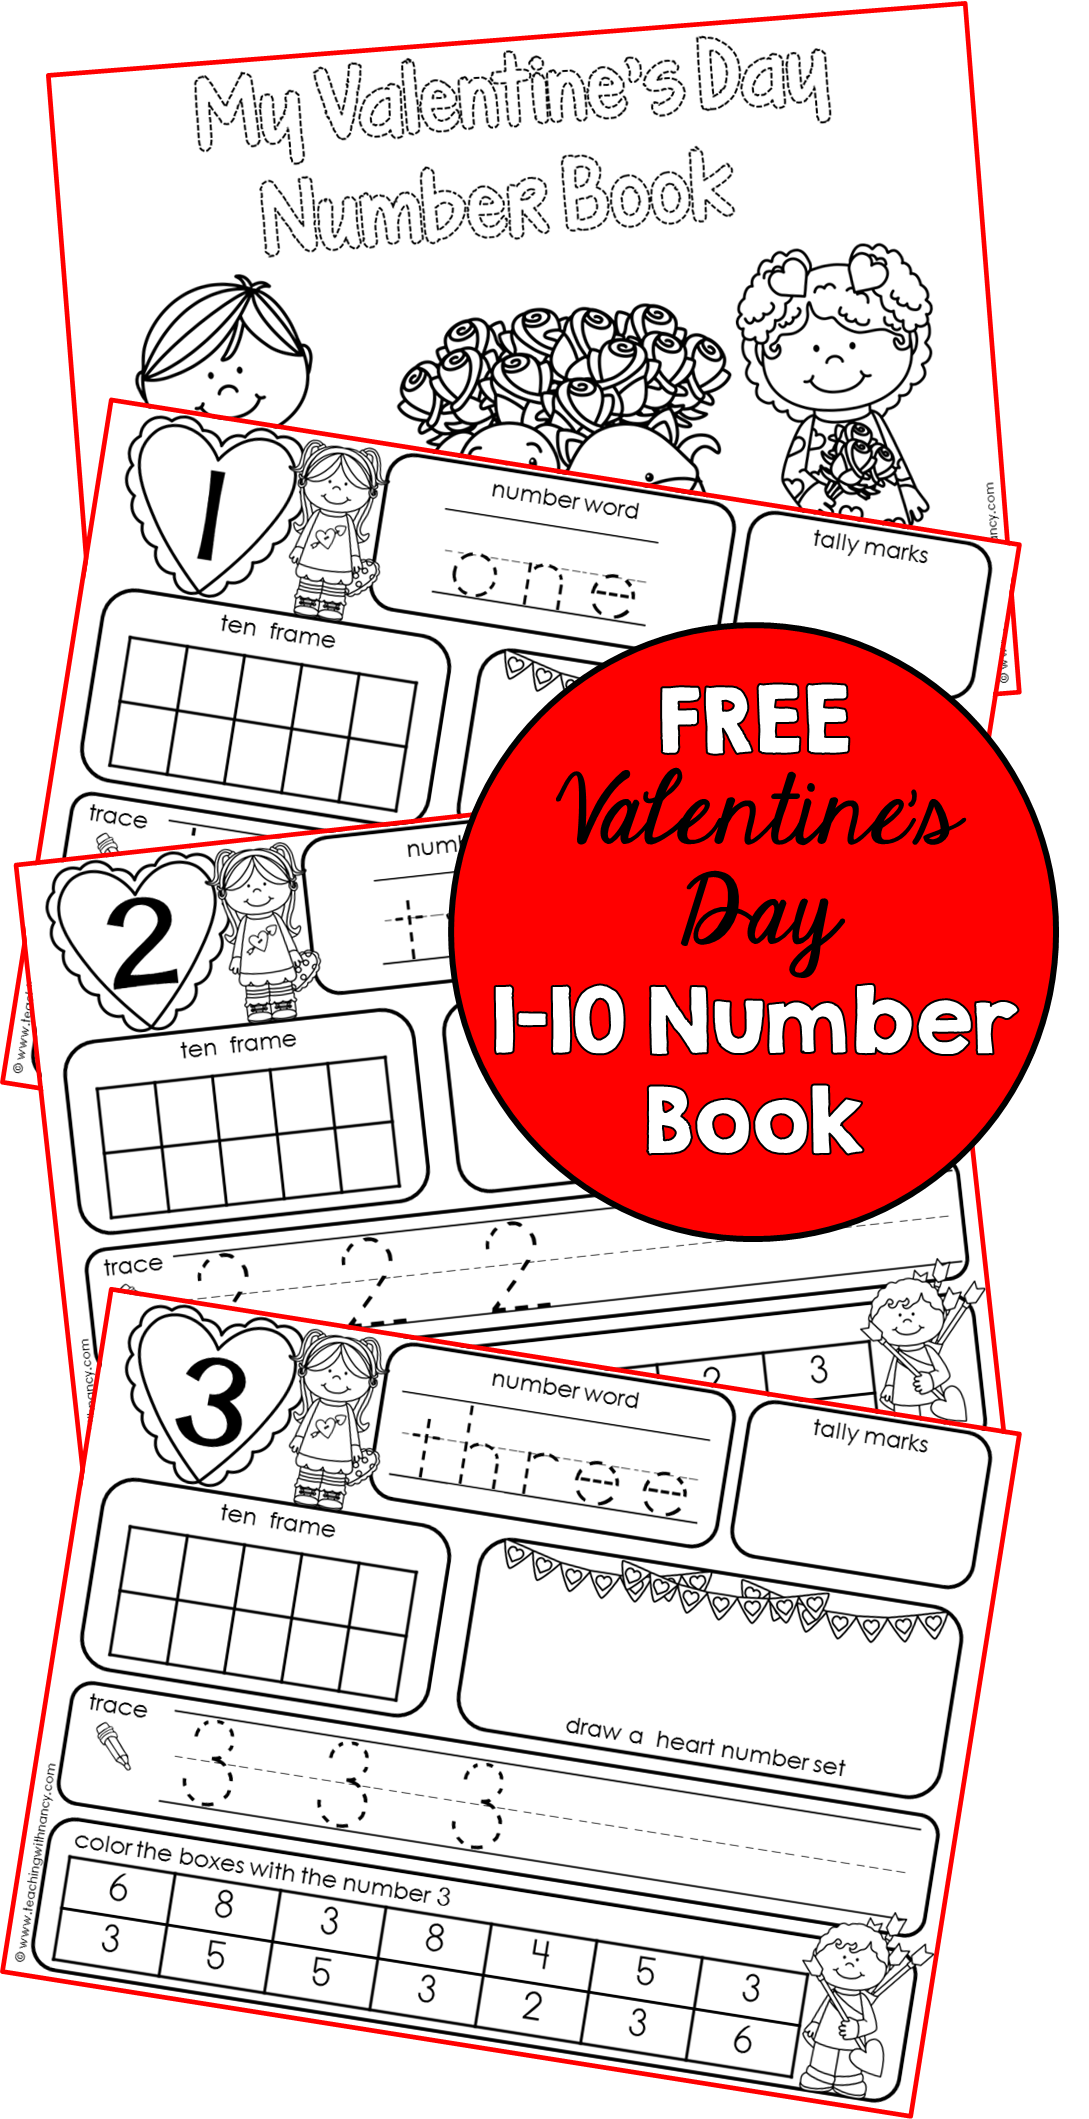 Valentine S Day 1 10 Number Book